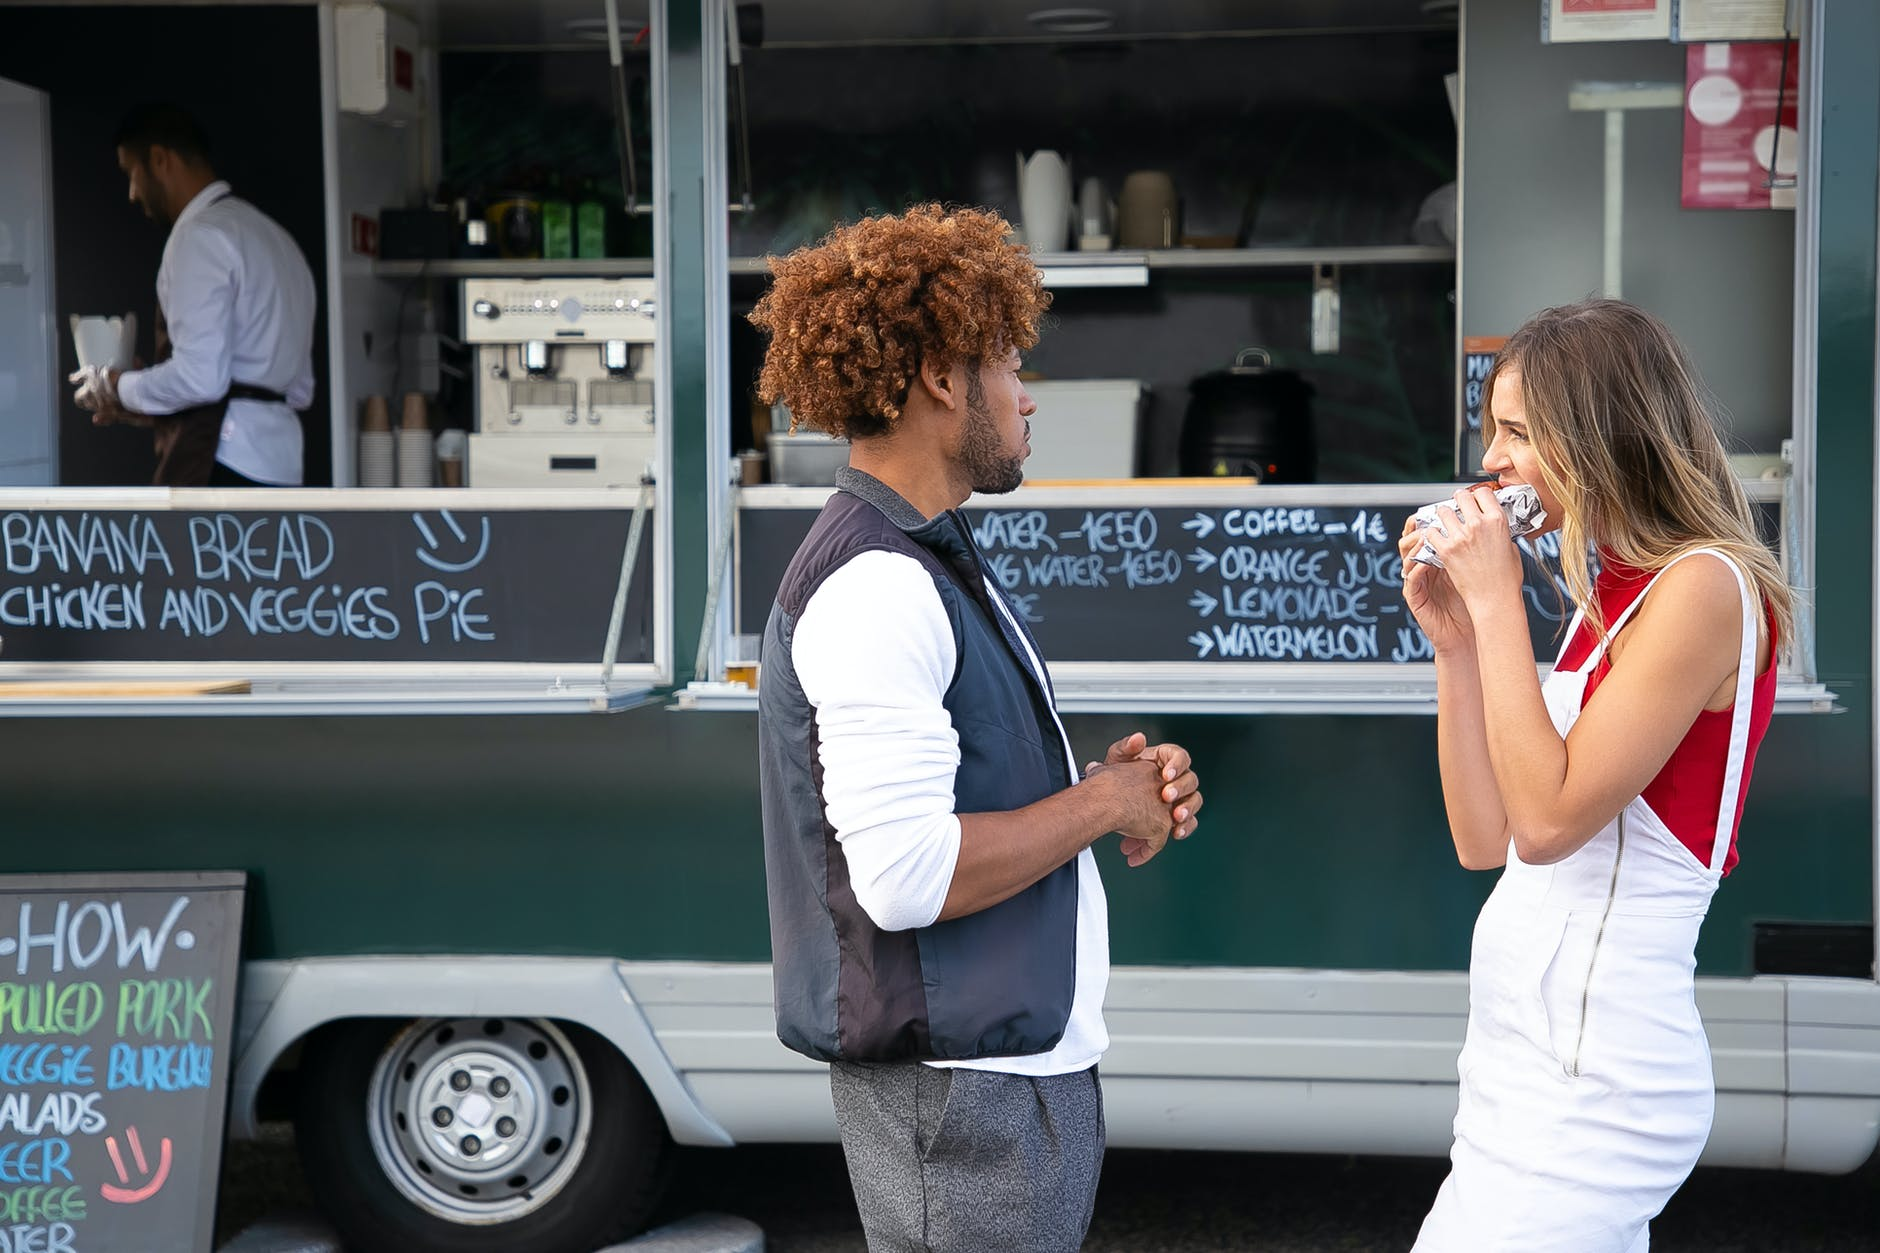 young diverse couple eating takeaway sandwich while standing near food truck